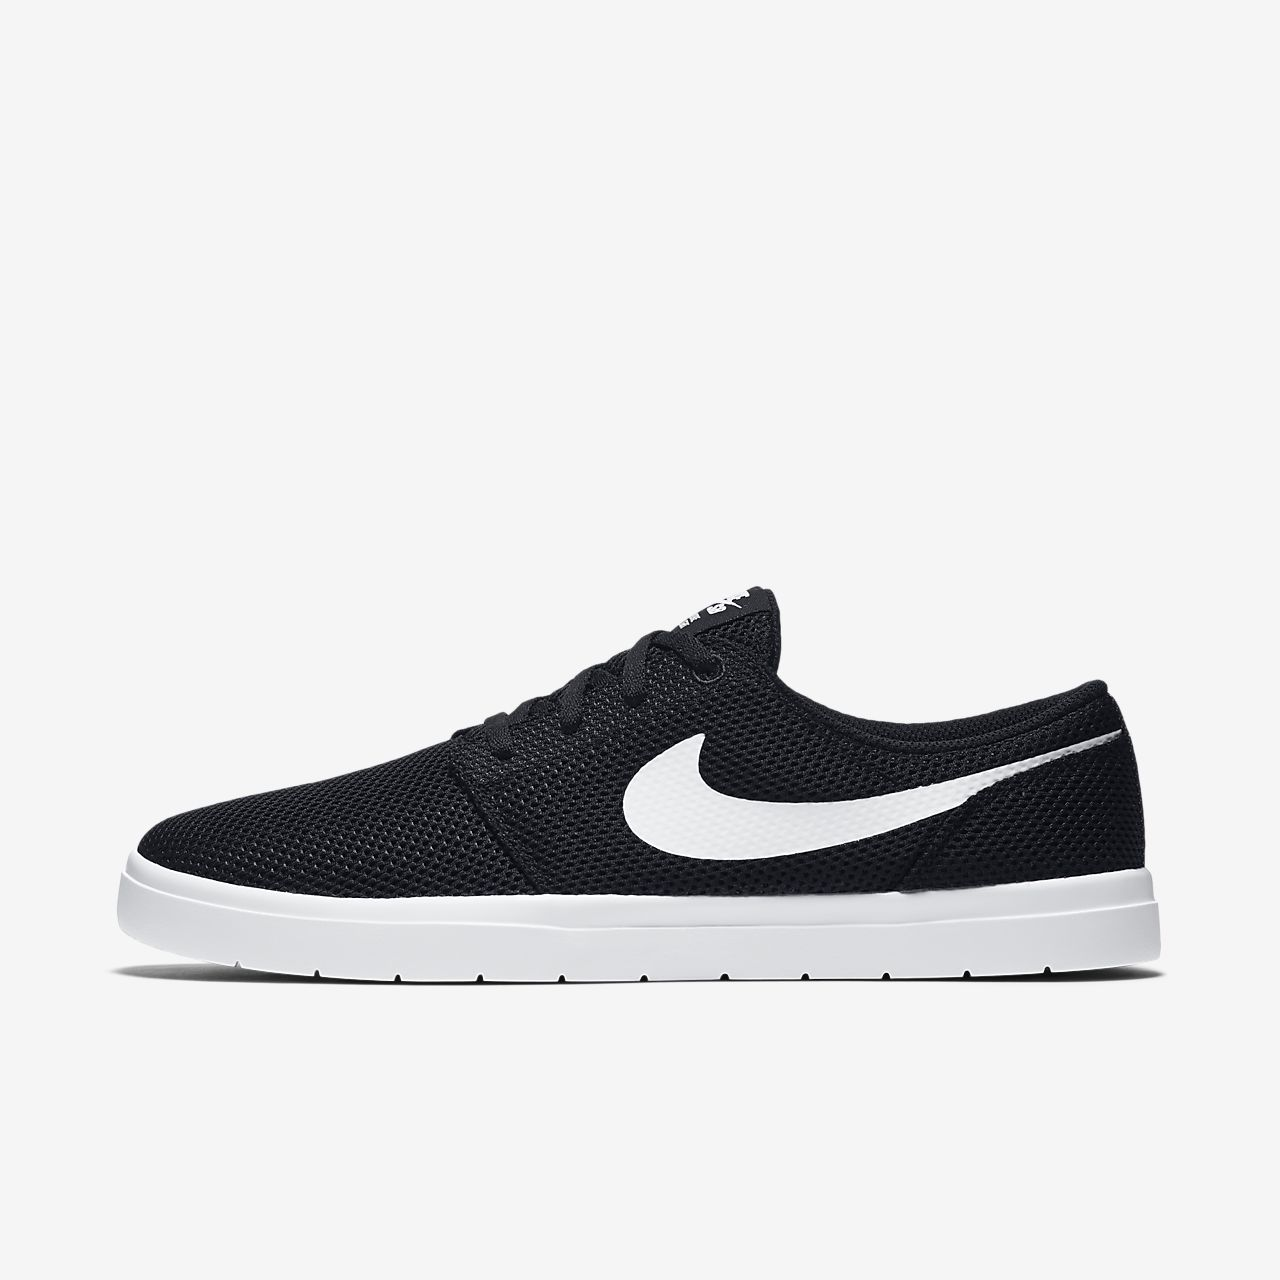 reputable site 41d7b f9f6f ... Nike SB Portmore II Ultralight Mens Skateboarding Shoe